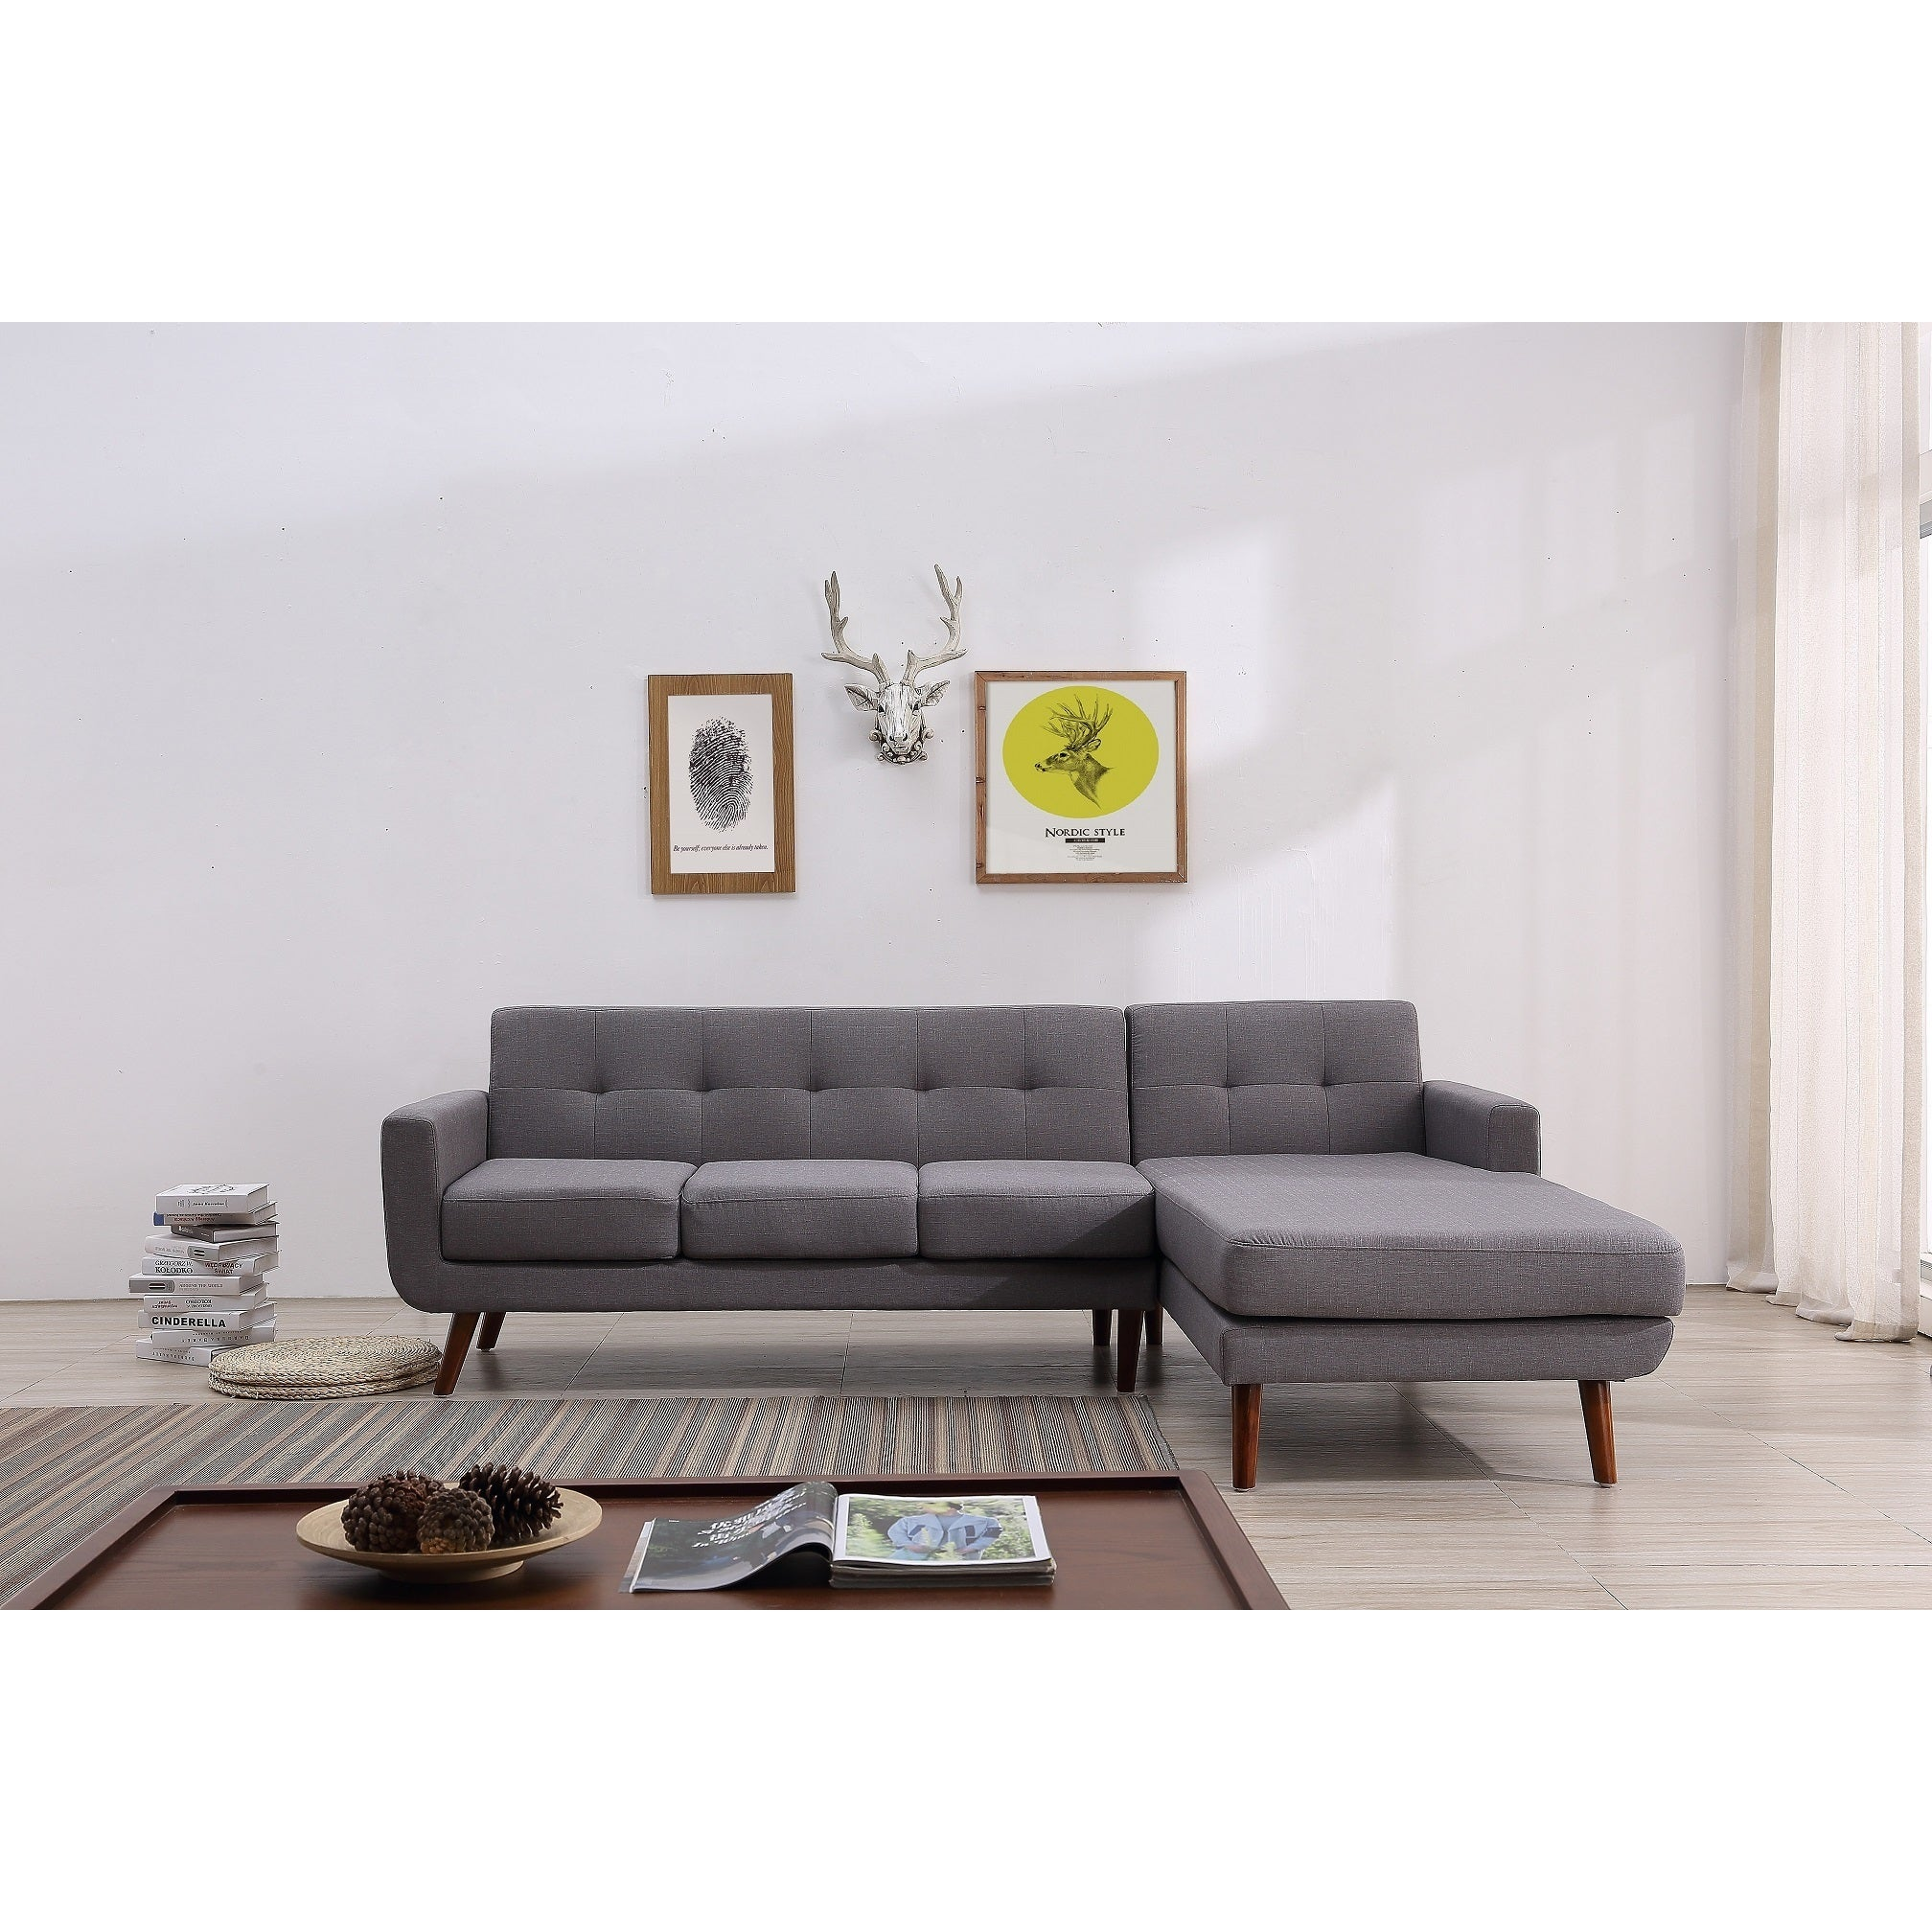 Carson Carrington Ahtari Mid-century Right-facing Tufted Linen Fabric  Upholstered Sectional Sofa